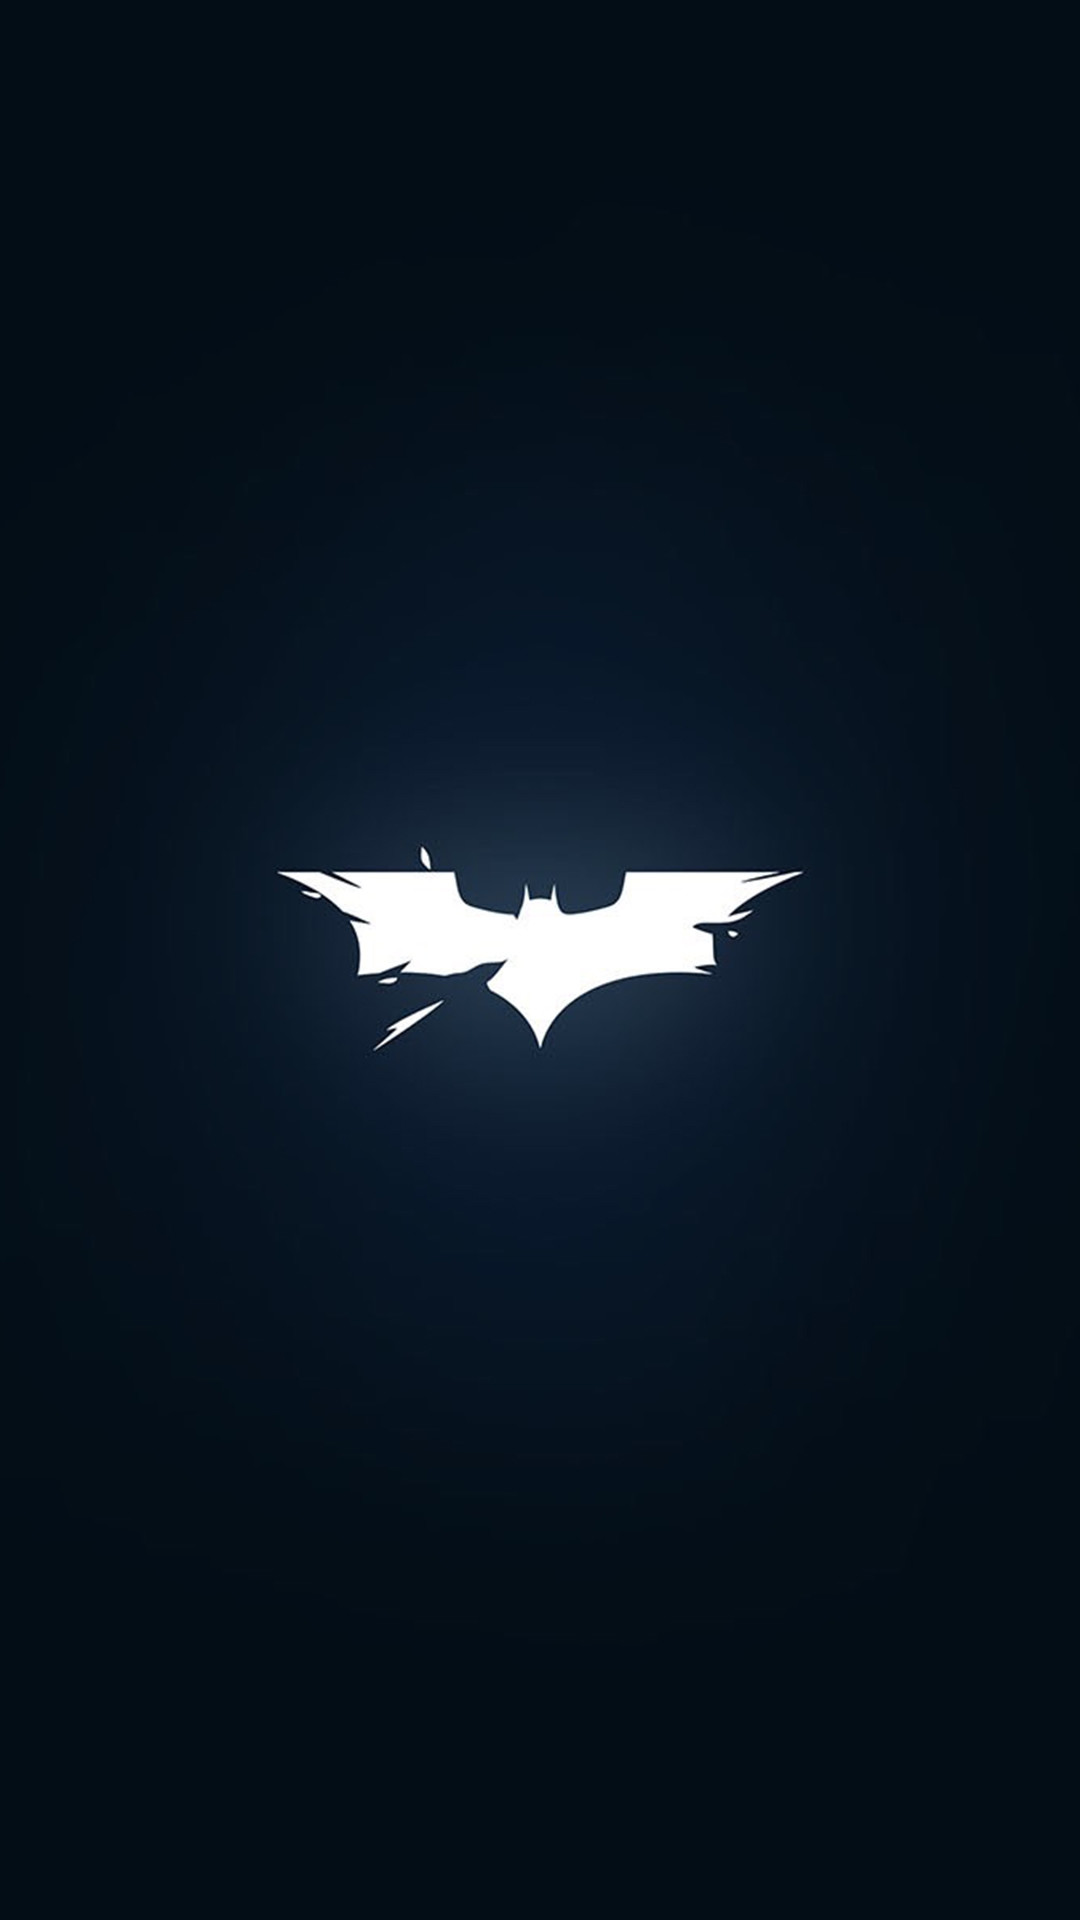 Customize your iPhone 6 with this high definition Batman Logo wallpaper  from HD Phone Wallpapers!